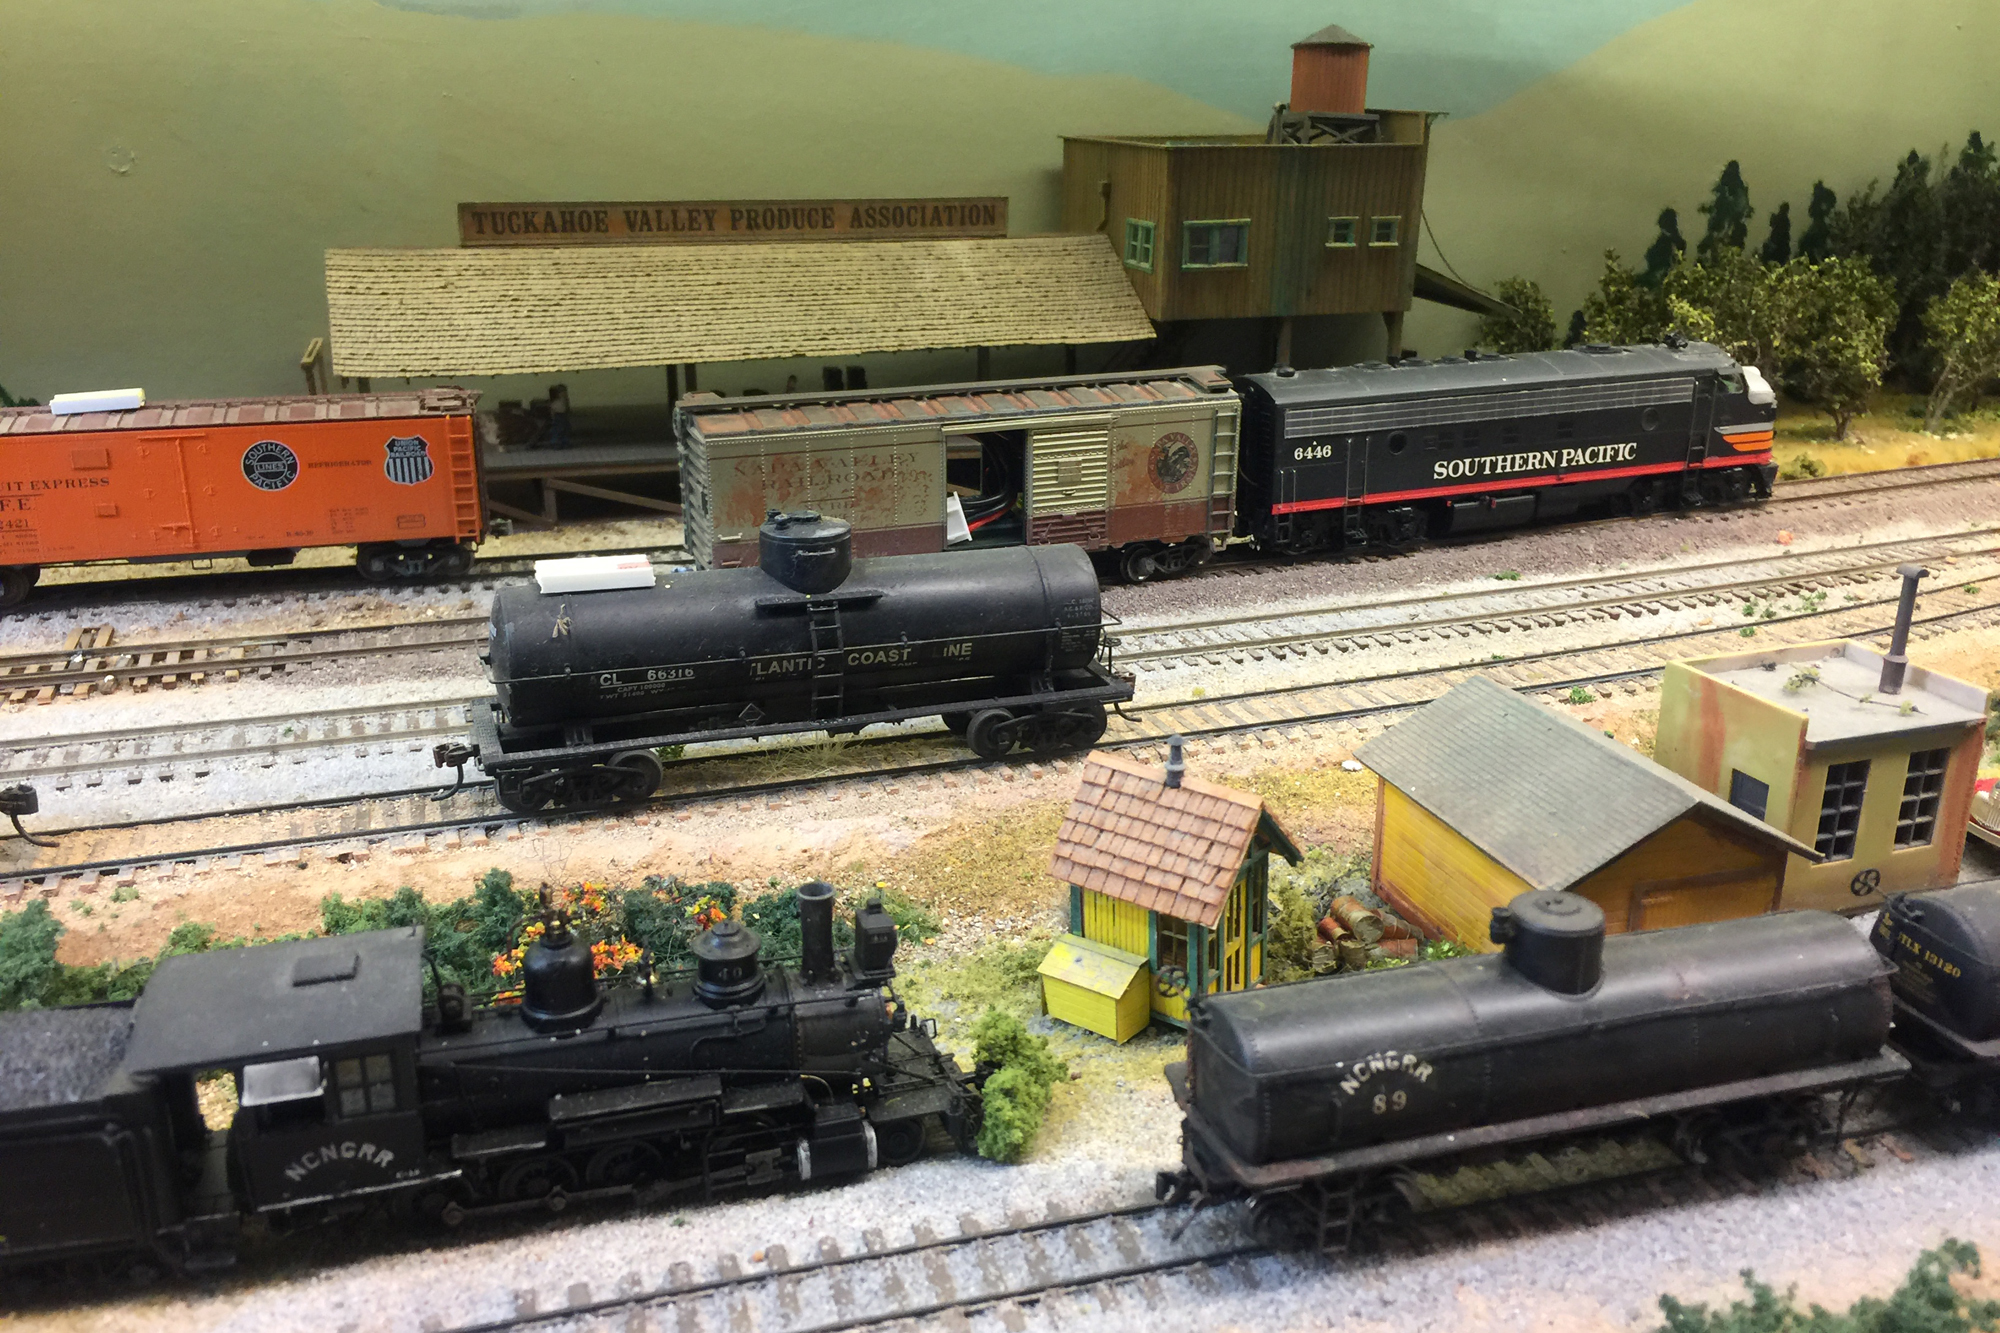 HO scale Dead Rail model layout by San Diego Division member.